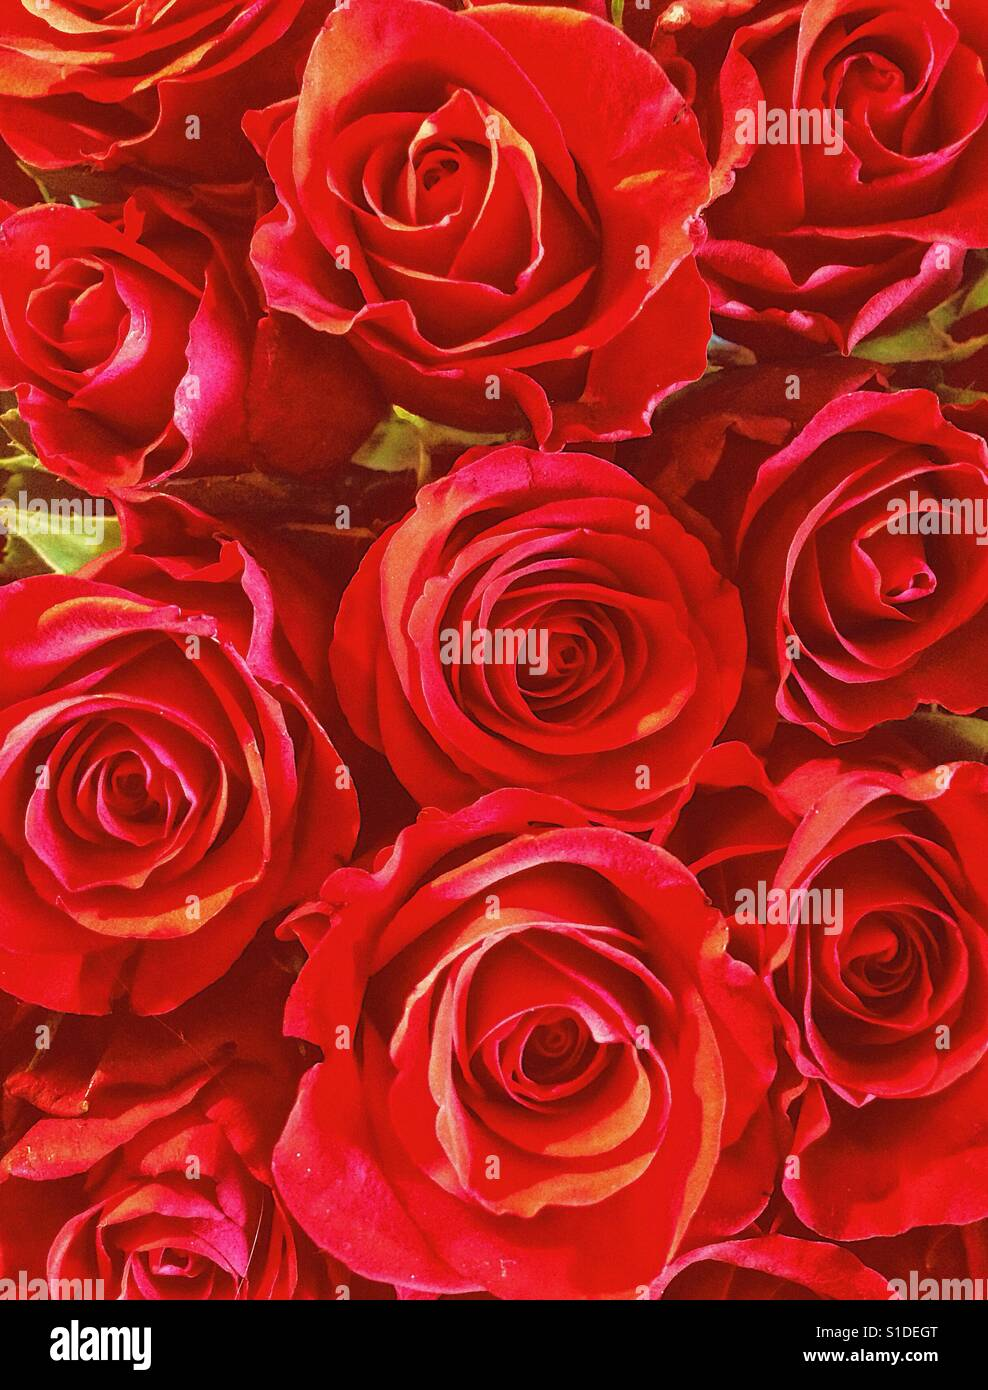 Red roses - Stock Image